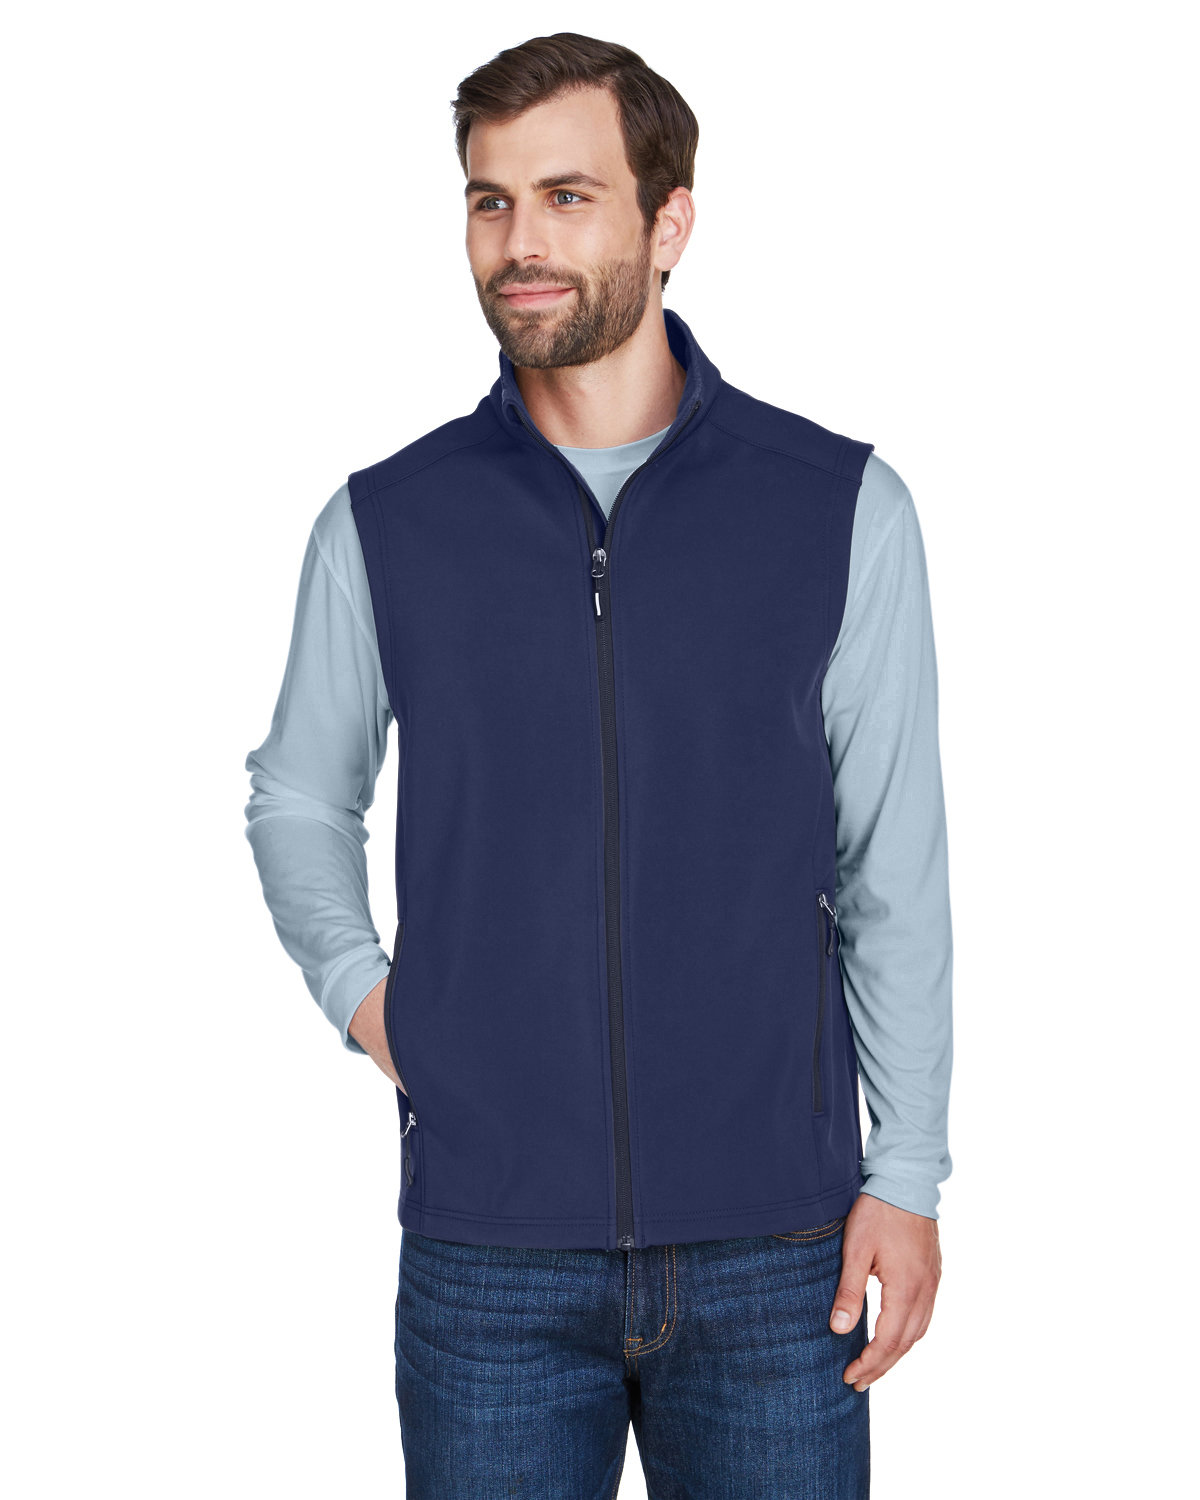 Core 365 Men's Cruise Two-Layer Fleece Bonded Soft Shell Vest CLASSIC NAVY